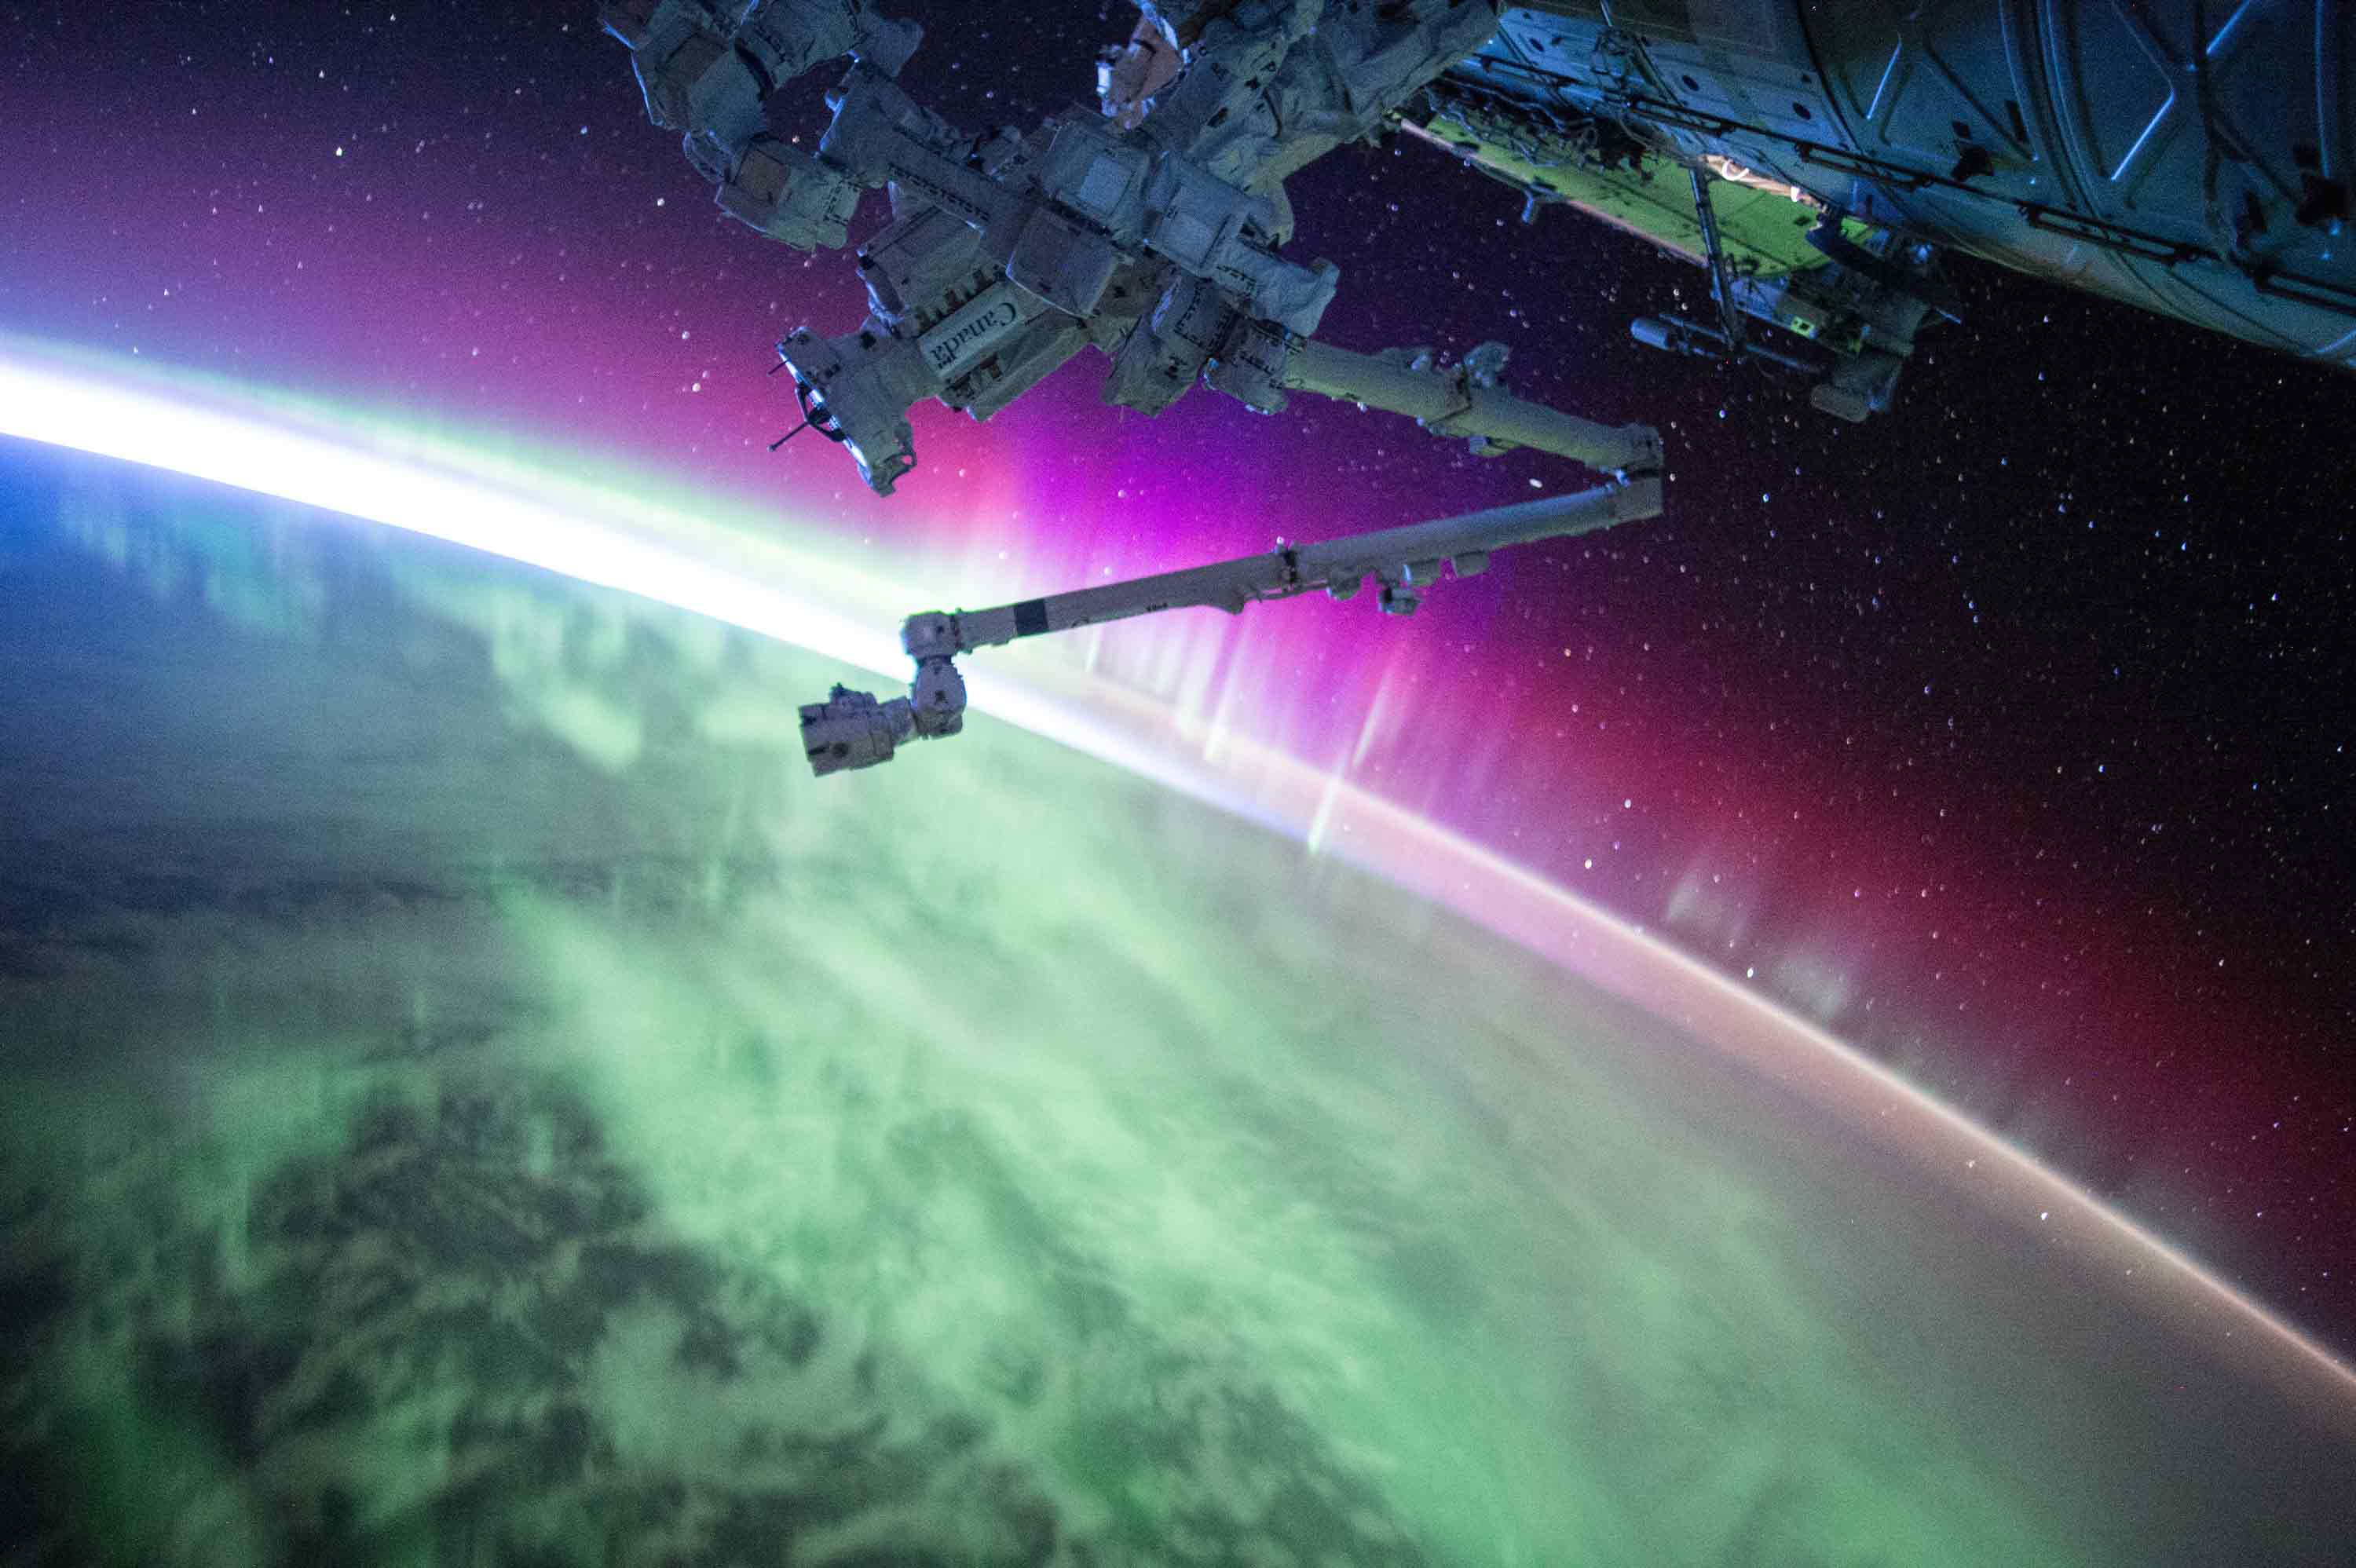 Photo of the International Space Station and the aurora by NASA.